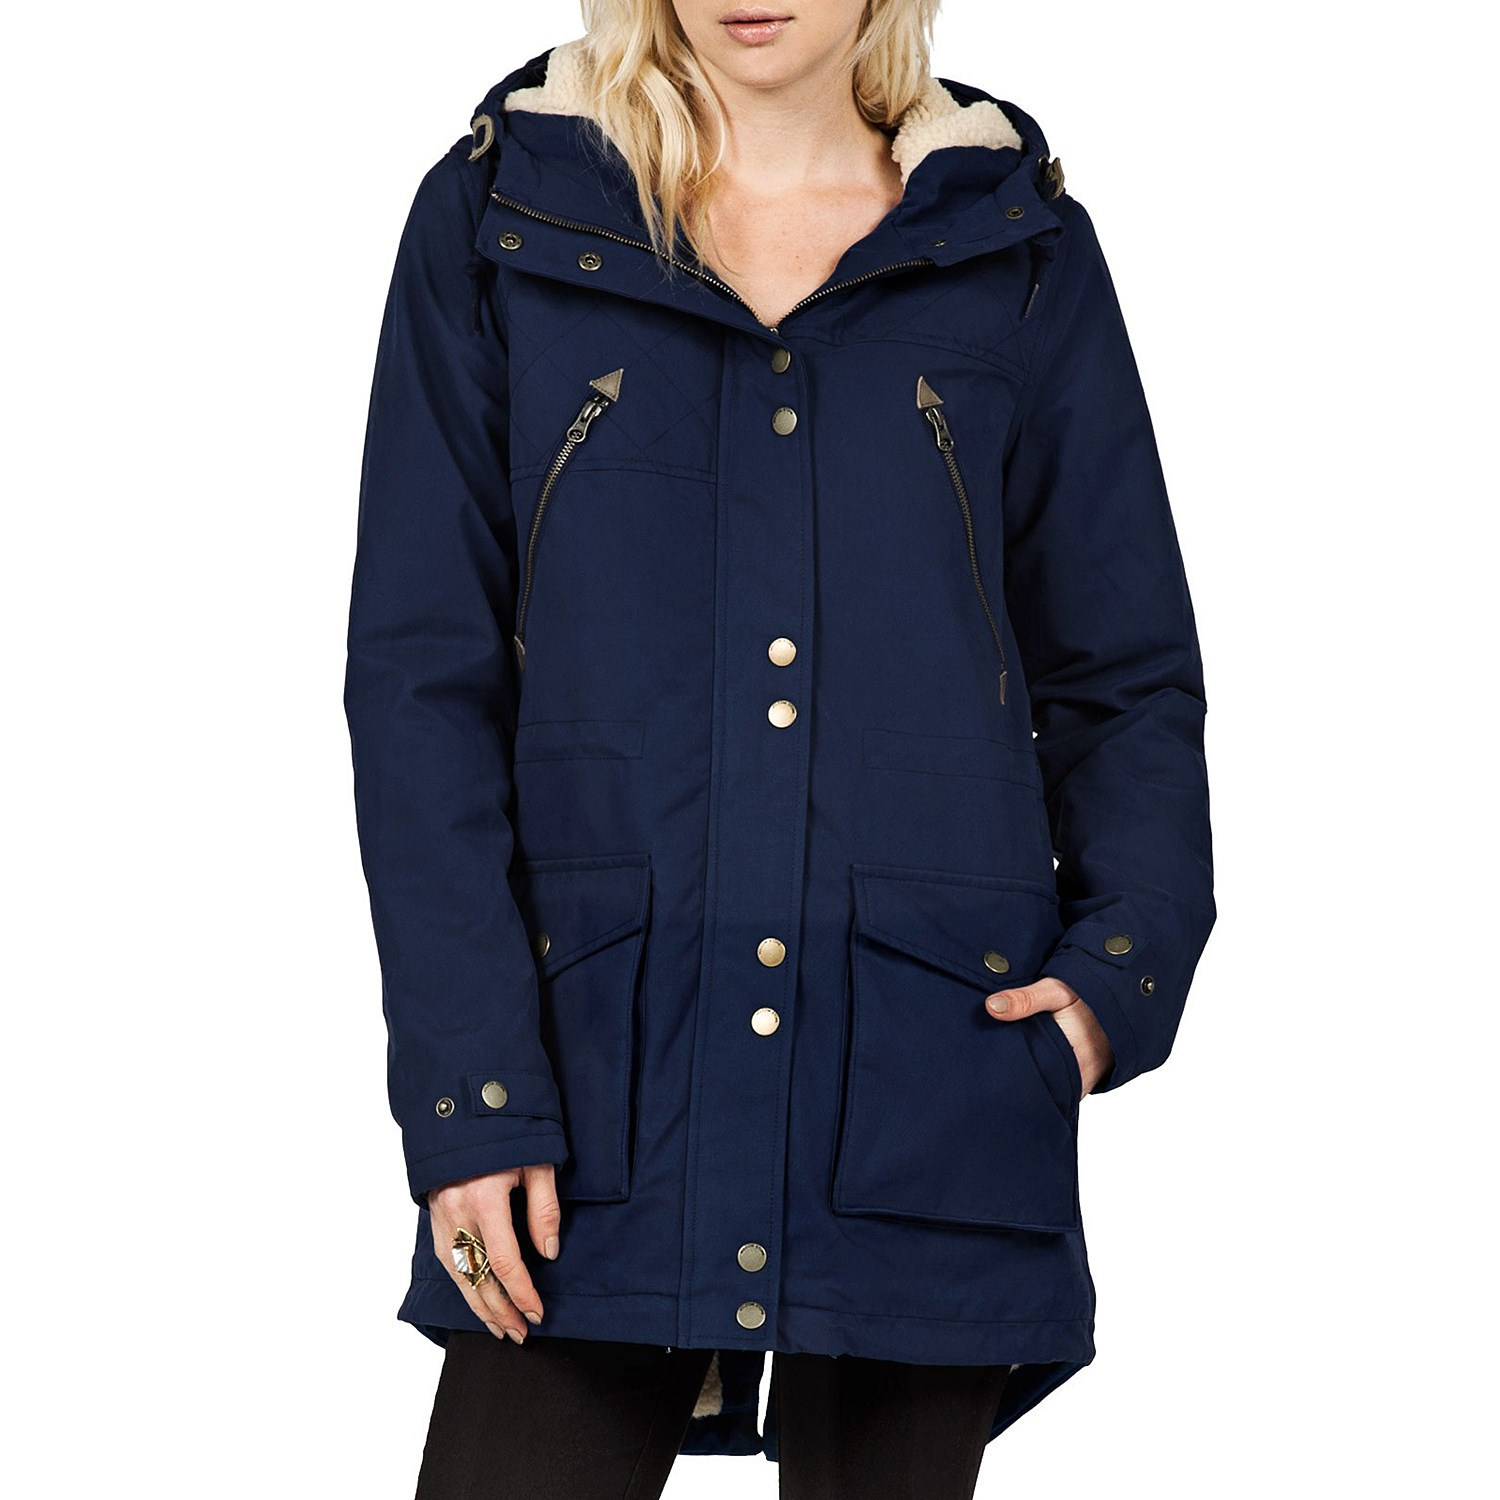 Find a great selection of women's parkas at trueiuptaf.gq Shop top brands like Burberry Brit, The North Face & more. Totally free shipping & returns.